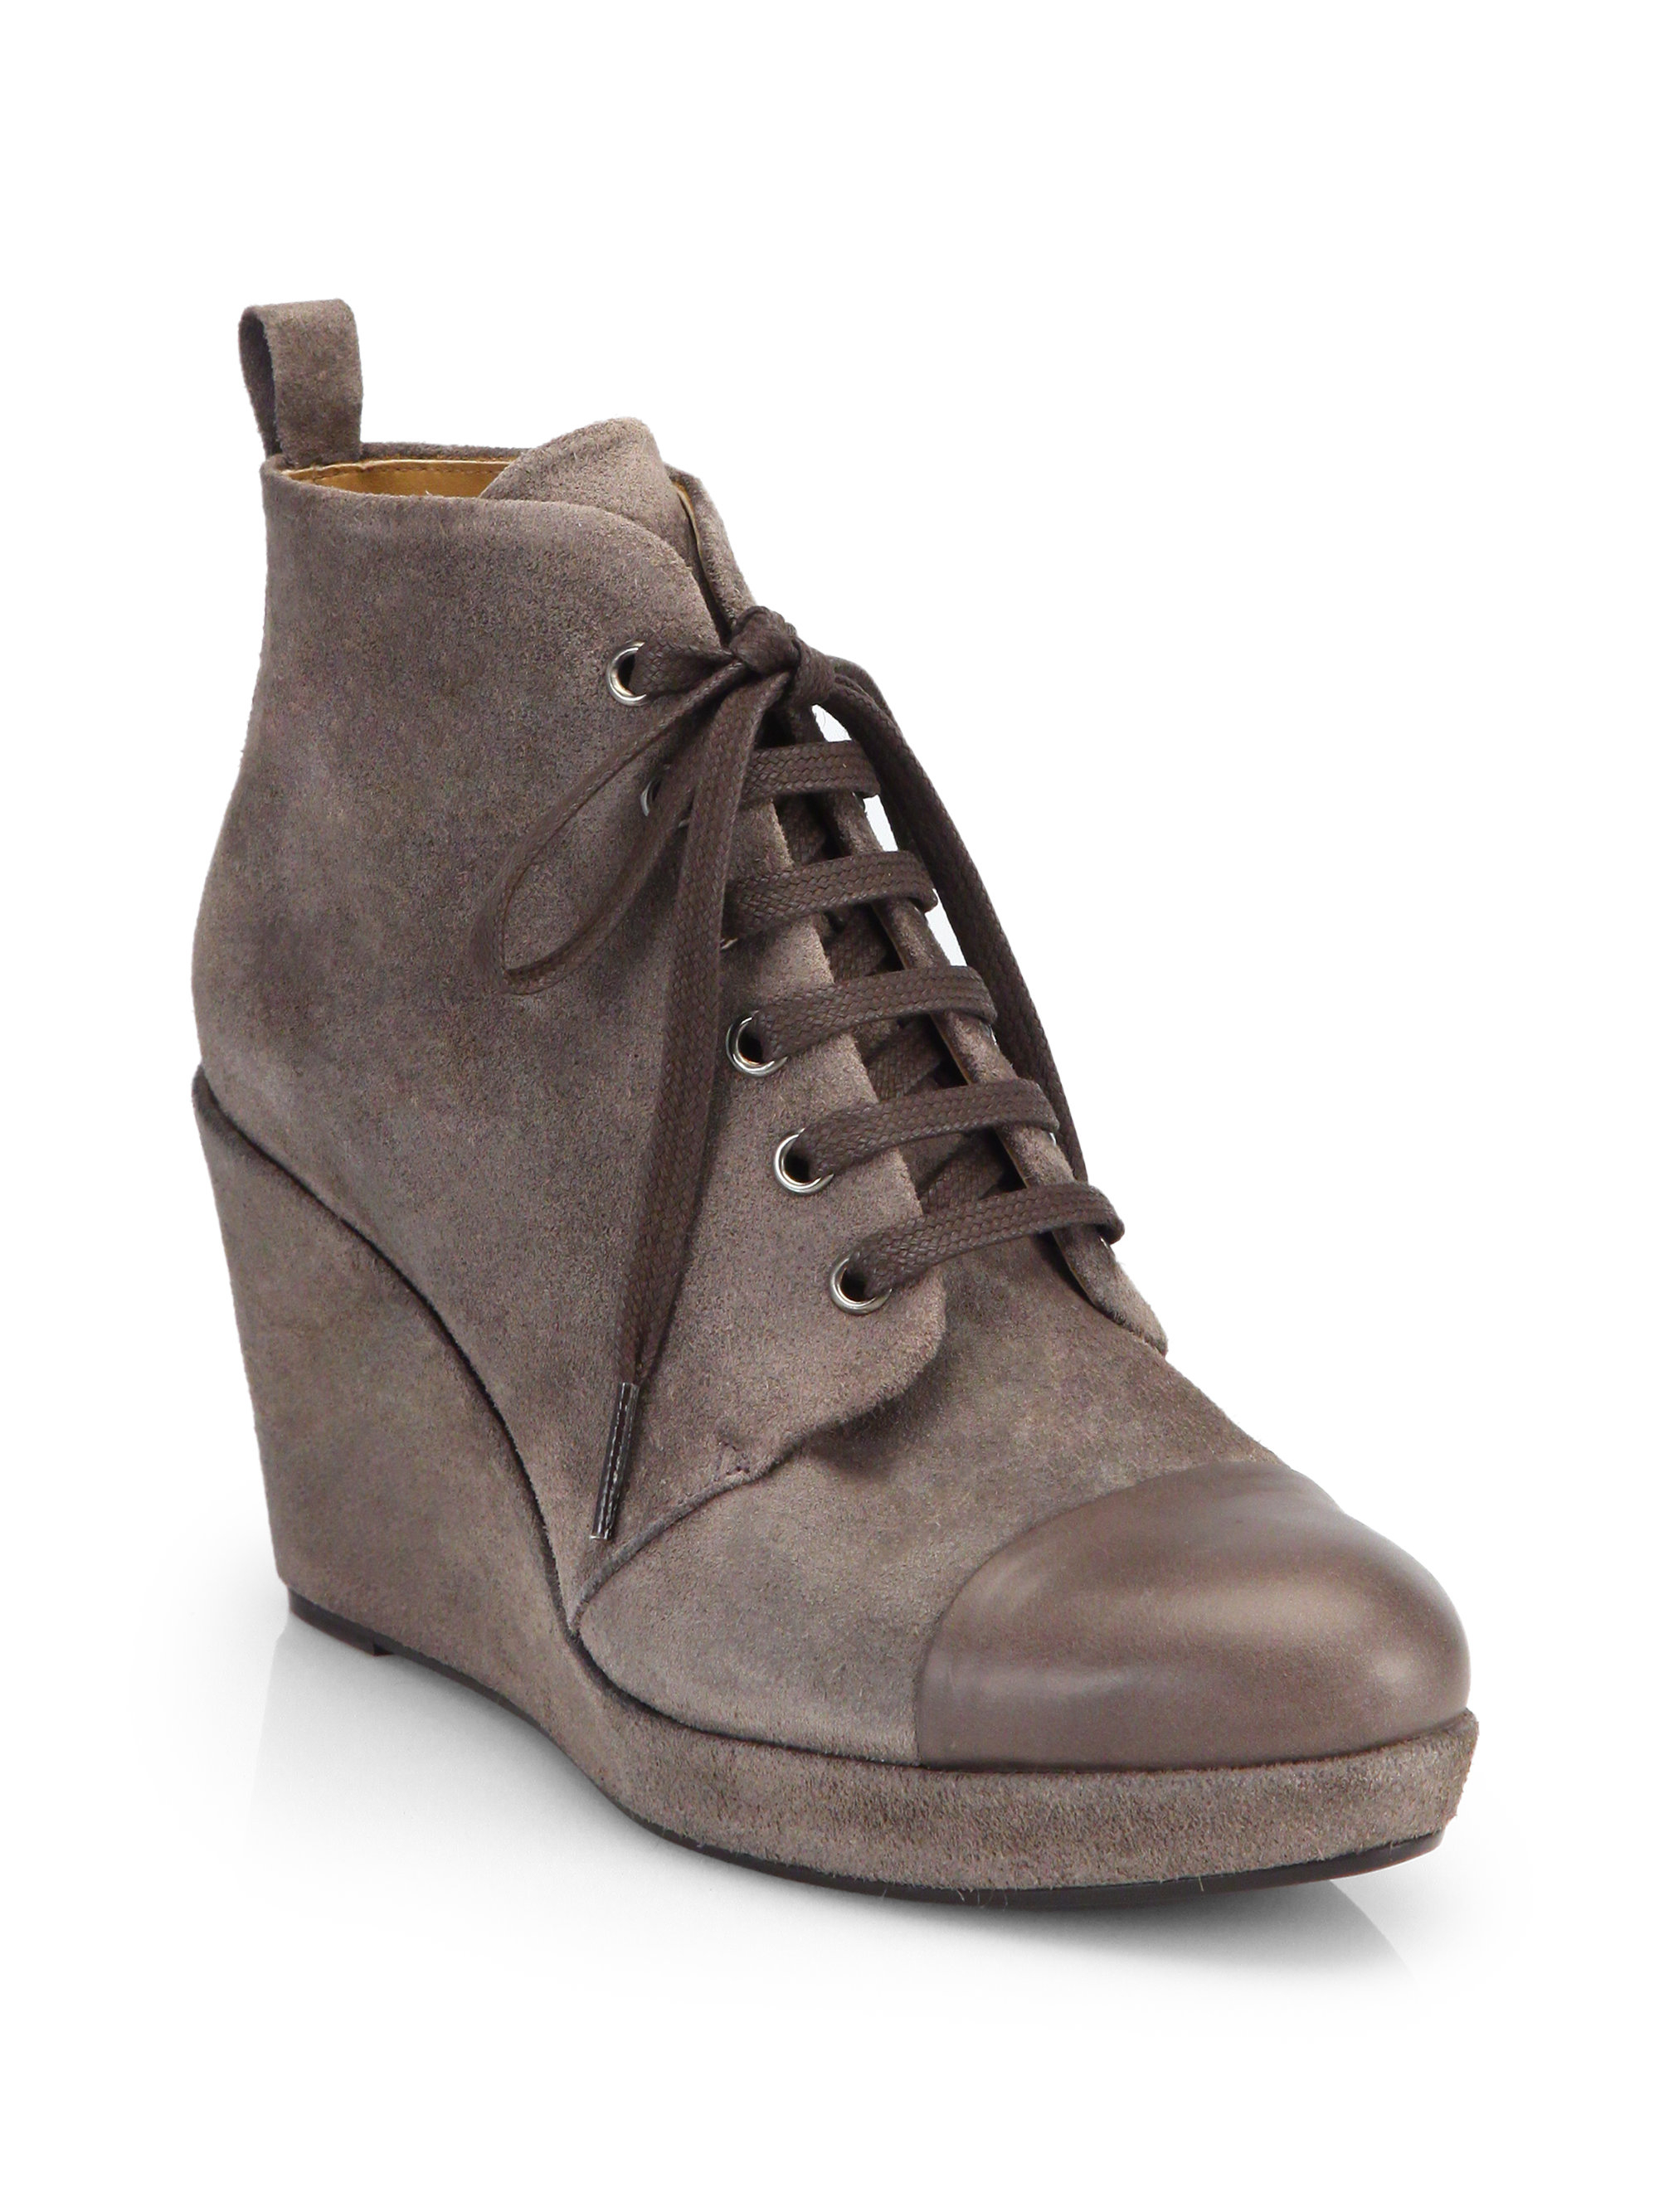 coclico henri suede lace up wedge ankle boots in brown